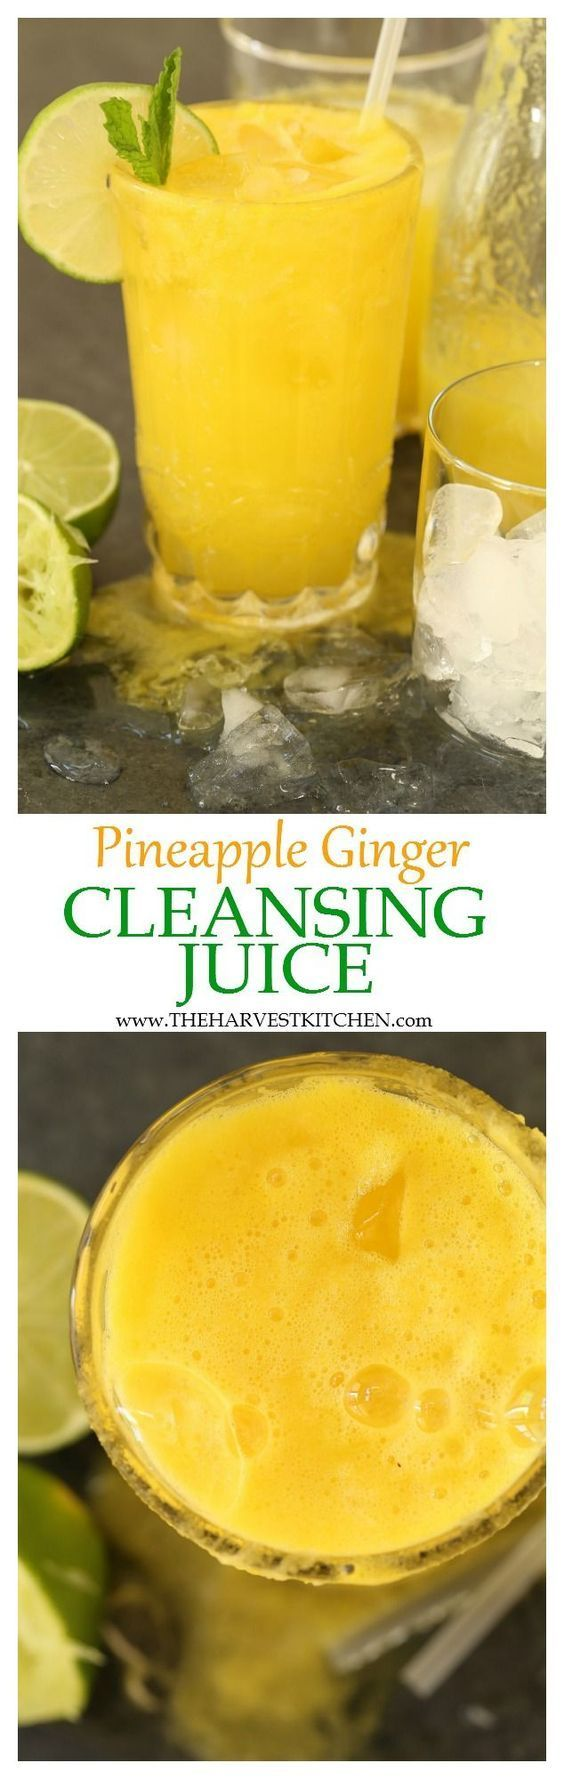 This Pineapple Ginger Cleansing Juice is rich in antioxidants and helps to aid digestion, and gently cleanse and alkalize the body.   detox drink     liver cleanse     pineapple ginger detox drink     healthy recipes  